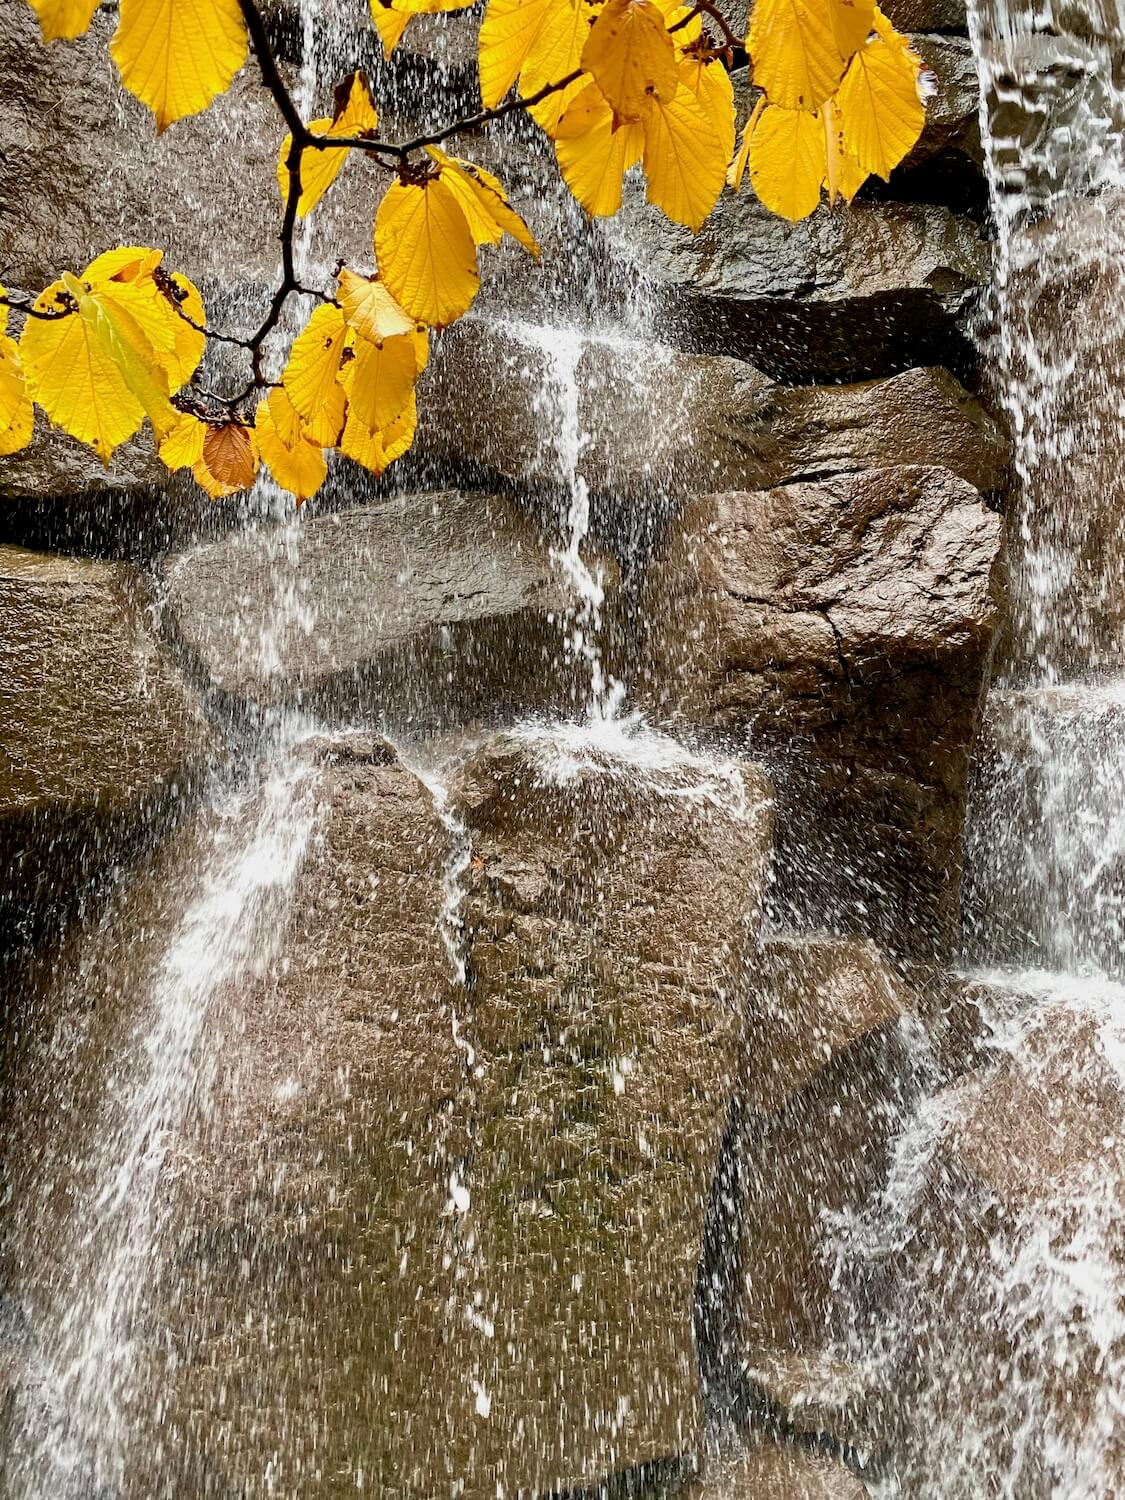 Water gushes down a rock wall, and the thousands of droplets splash all over, creating white foam while a branch holding bright yellow leaves waves.